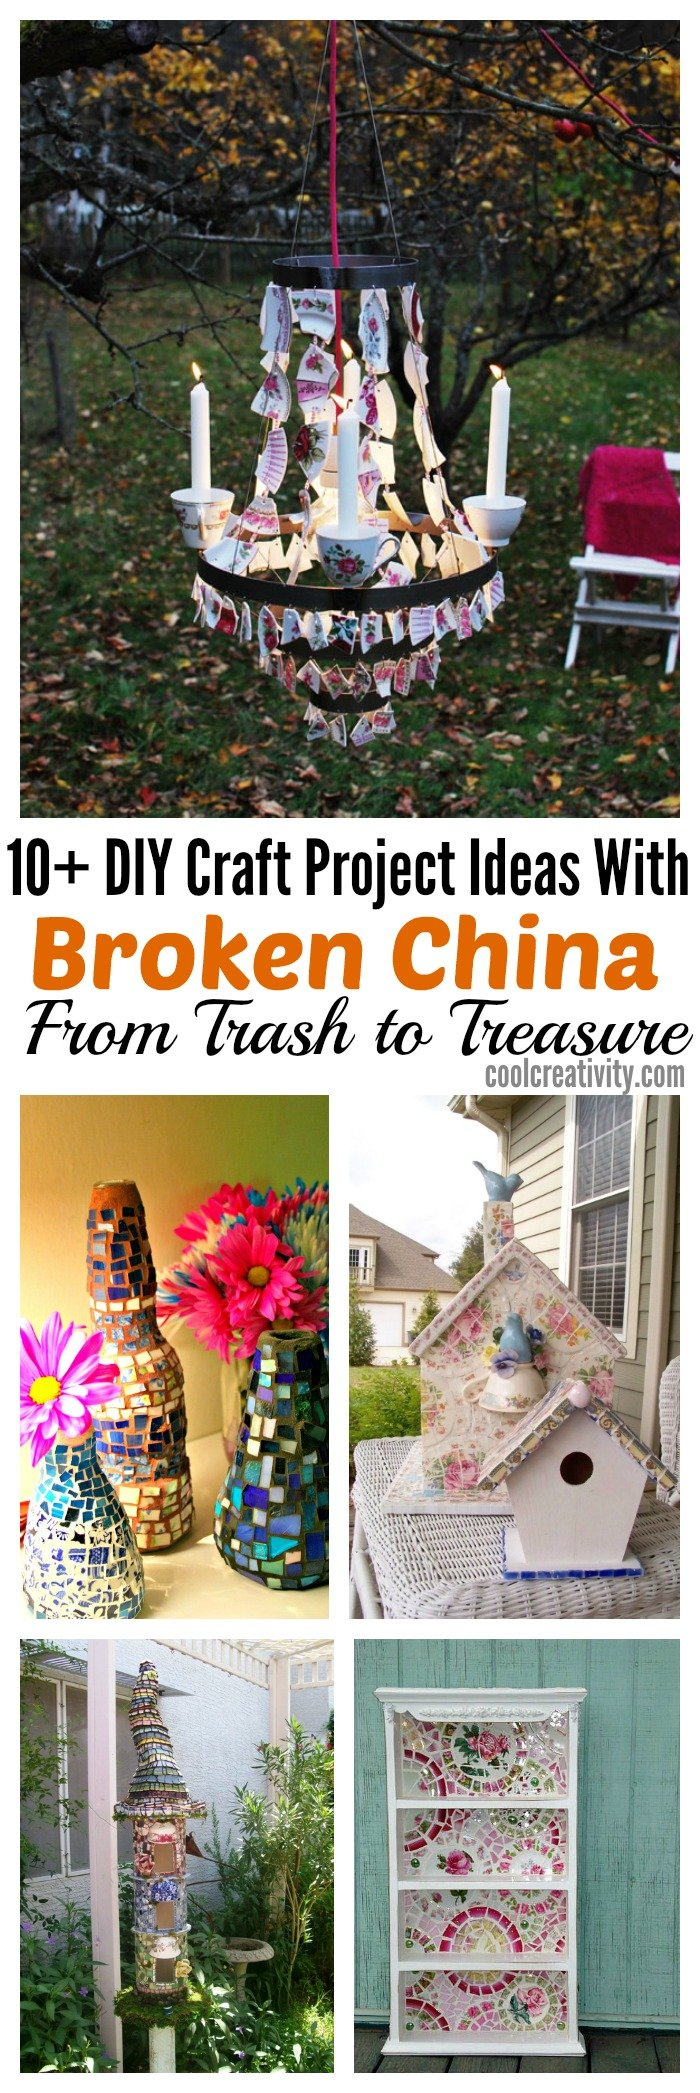 DIY Craft Project Ideas With Broken China